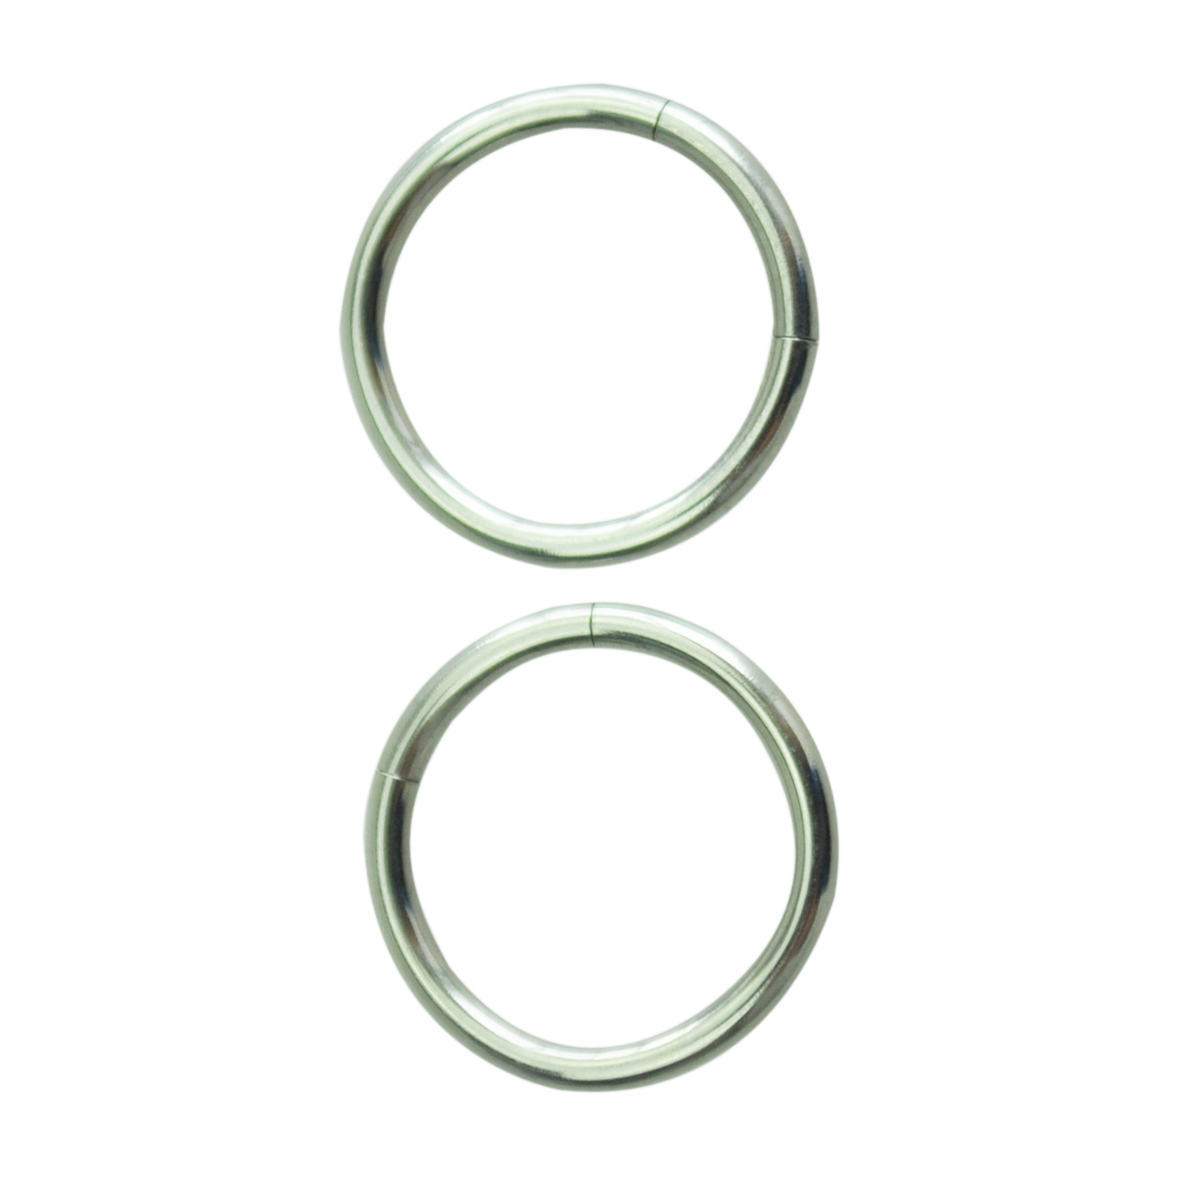 Endless Hoop Rings Lip Nose Ear Studs 1.2*10mm Silver